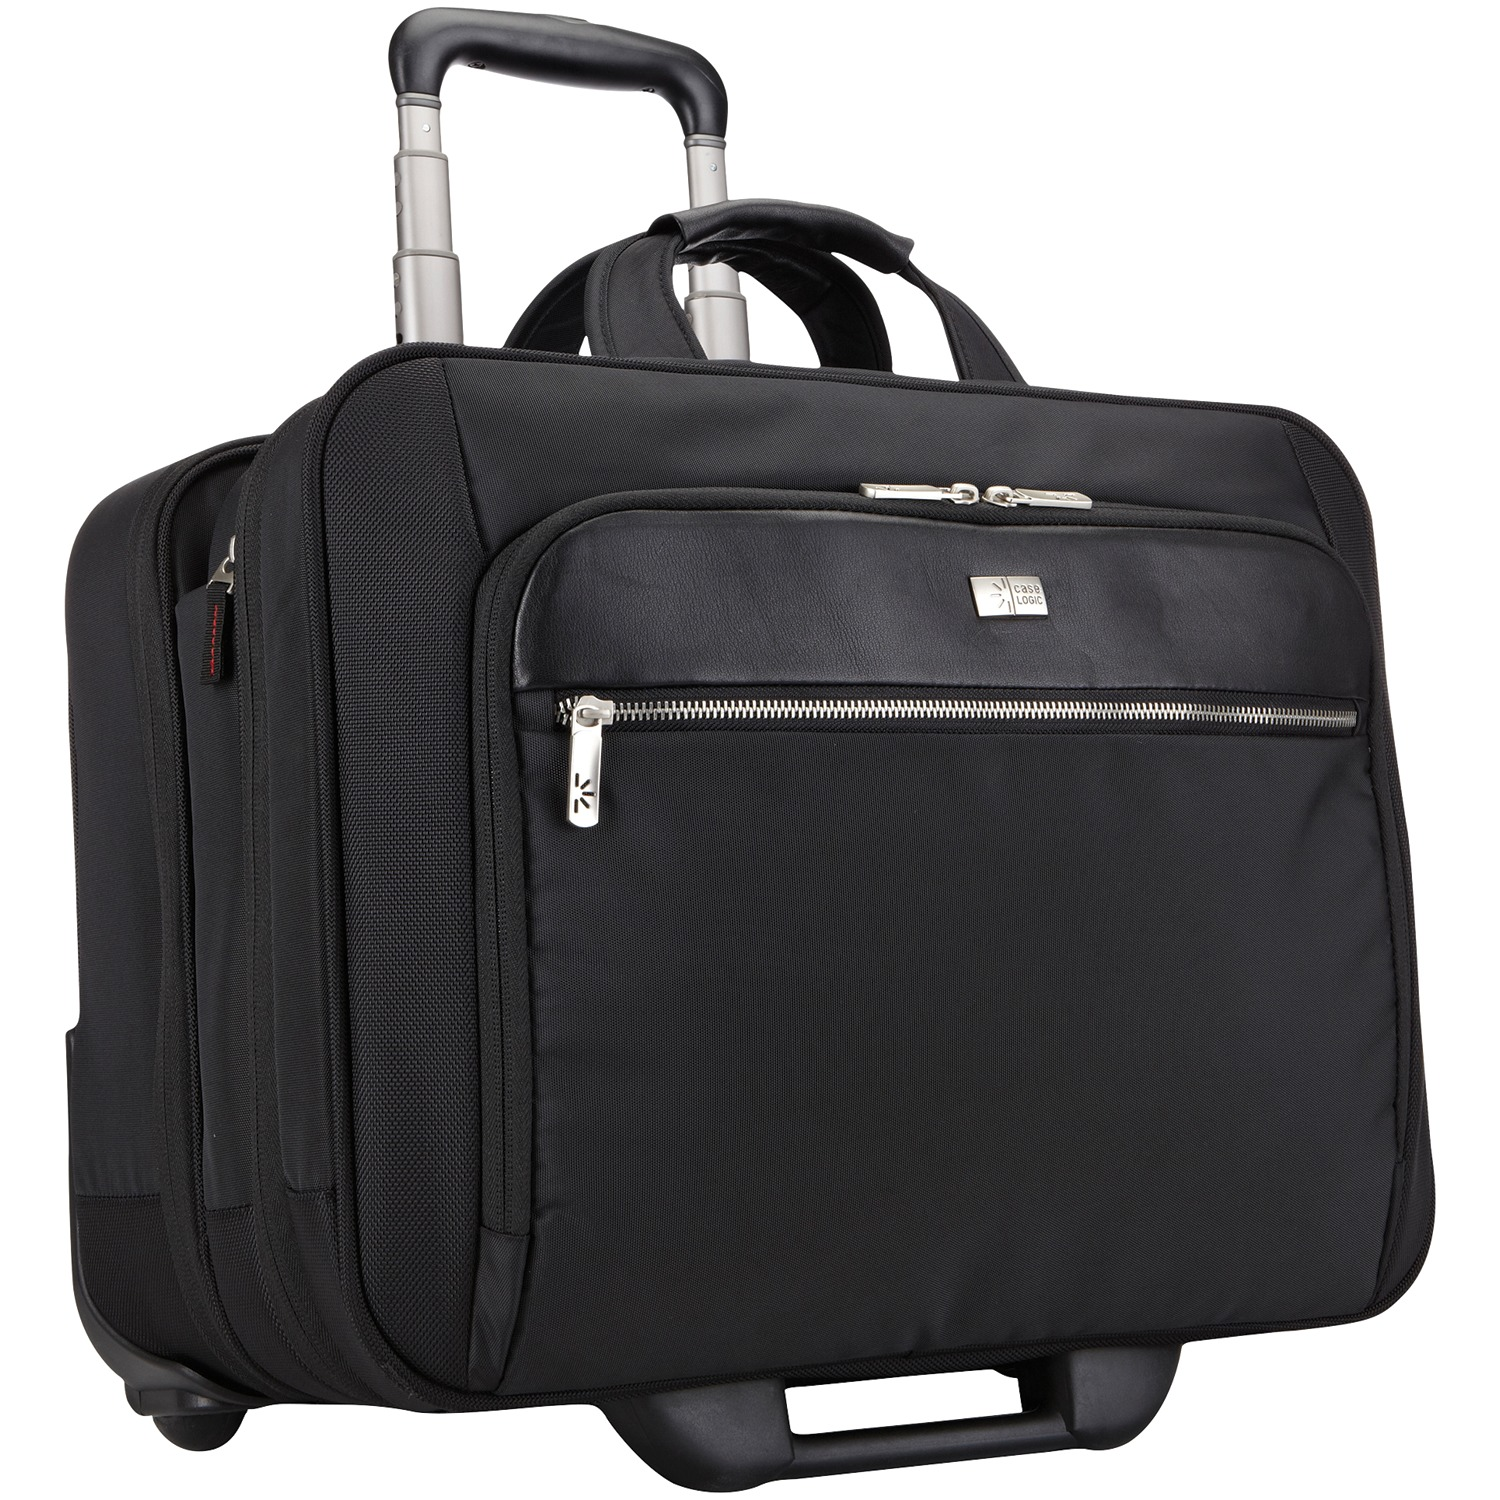 "Case Logic 3200943 17"" Checkpoint-friendly Rolling Laptop Case by Case Logic"